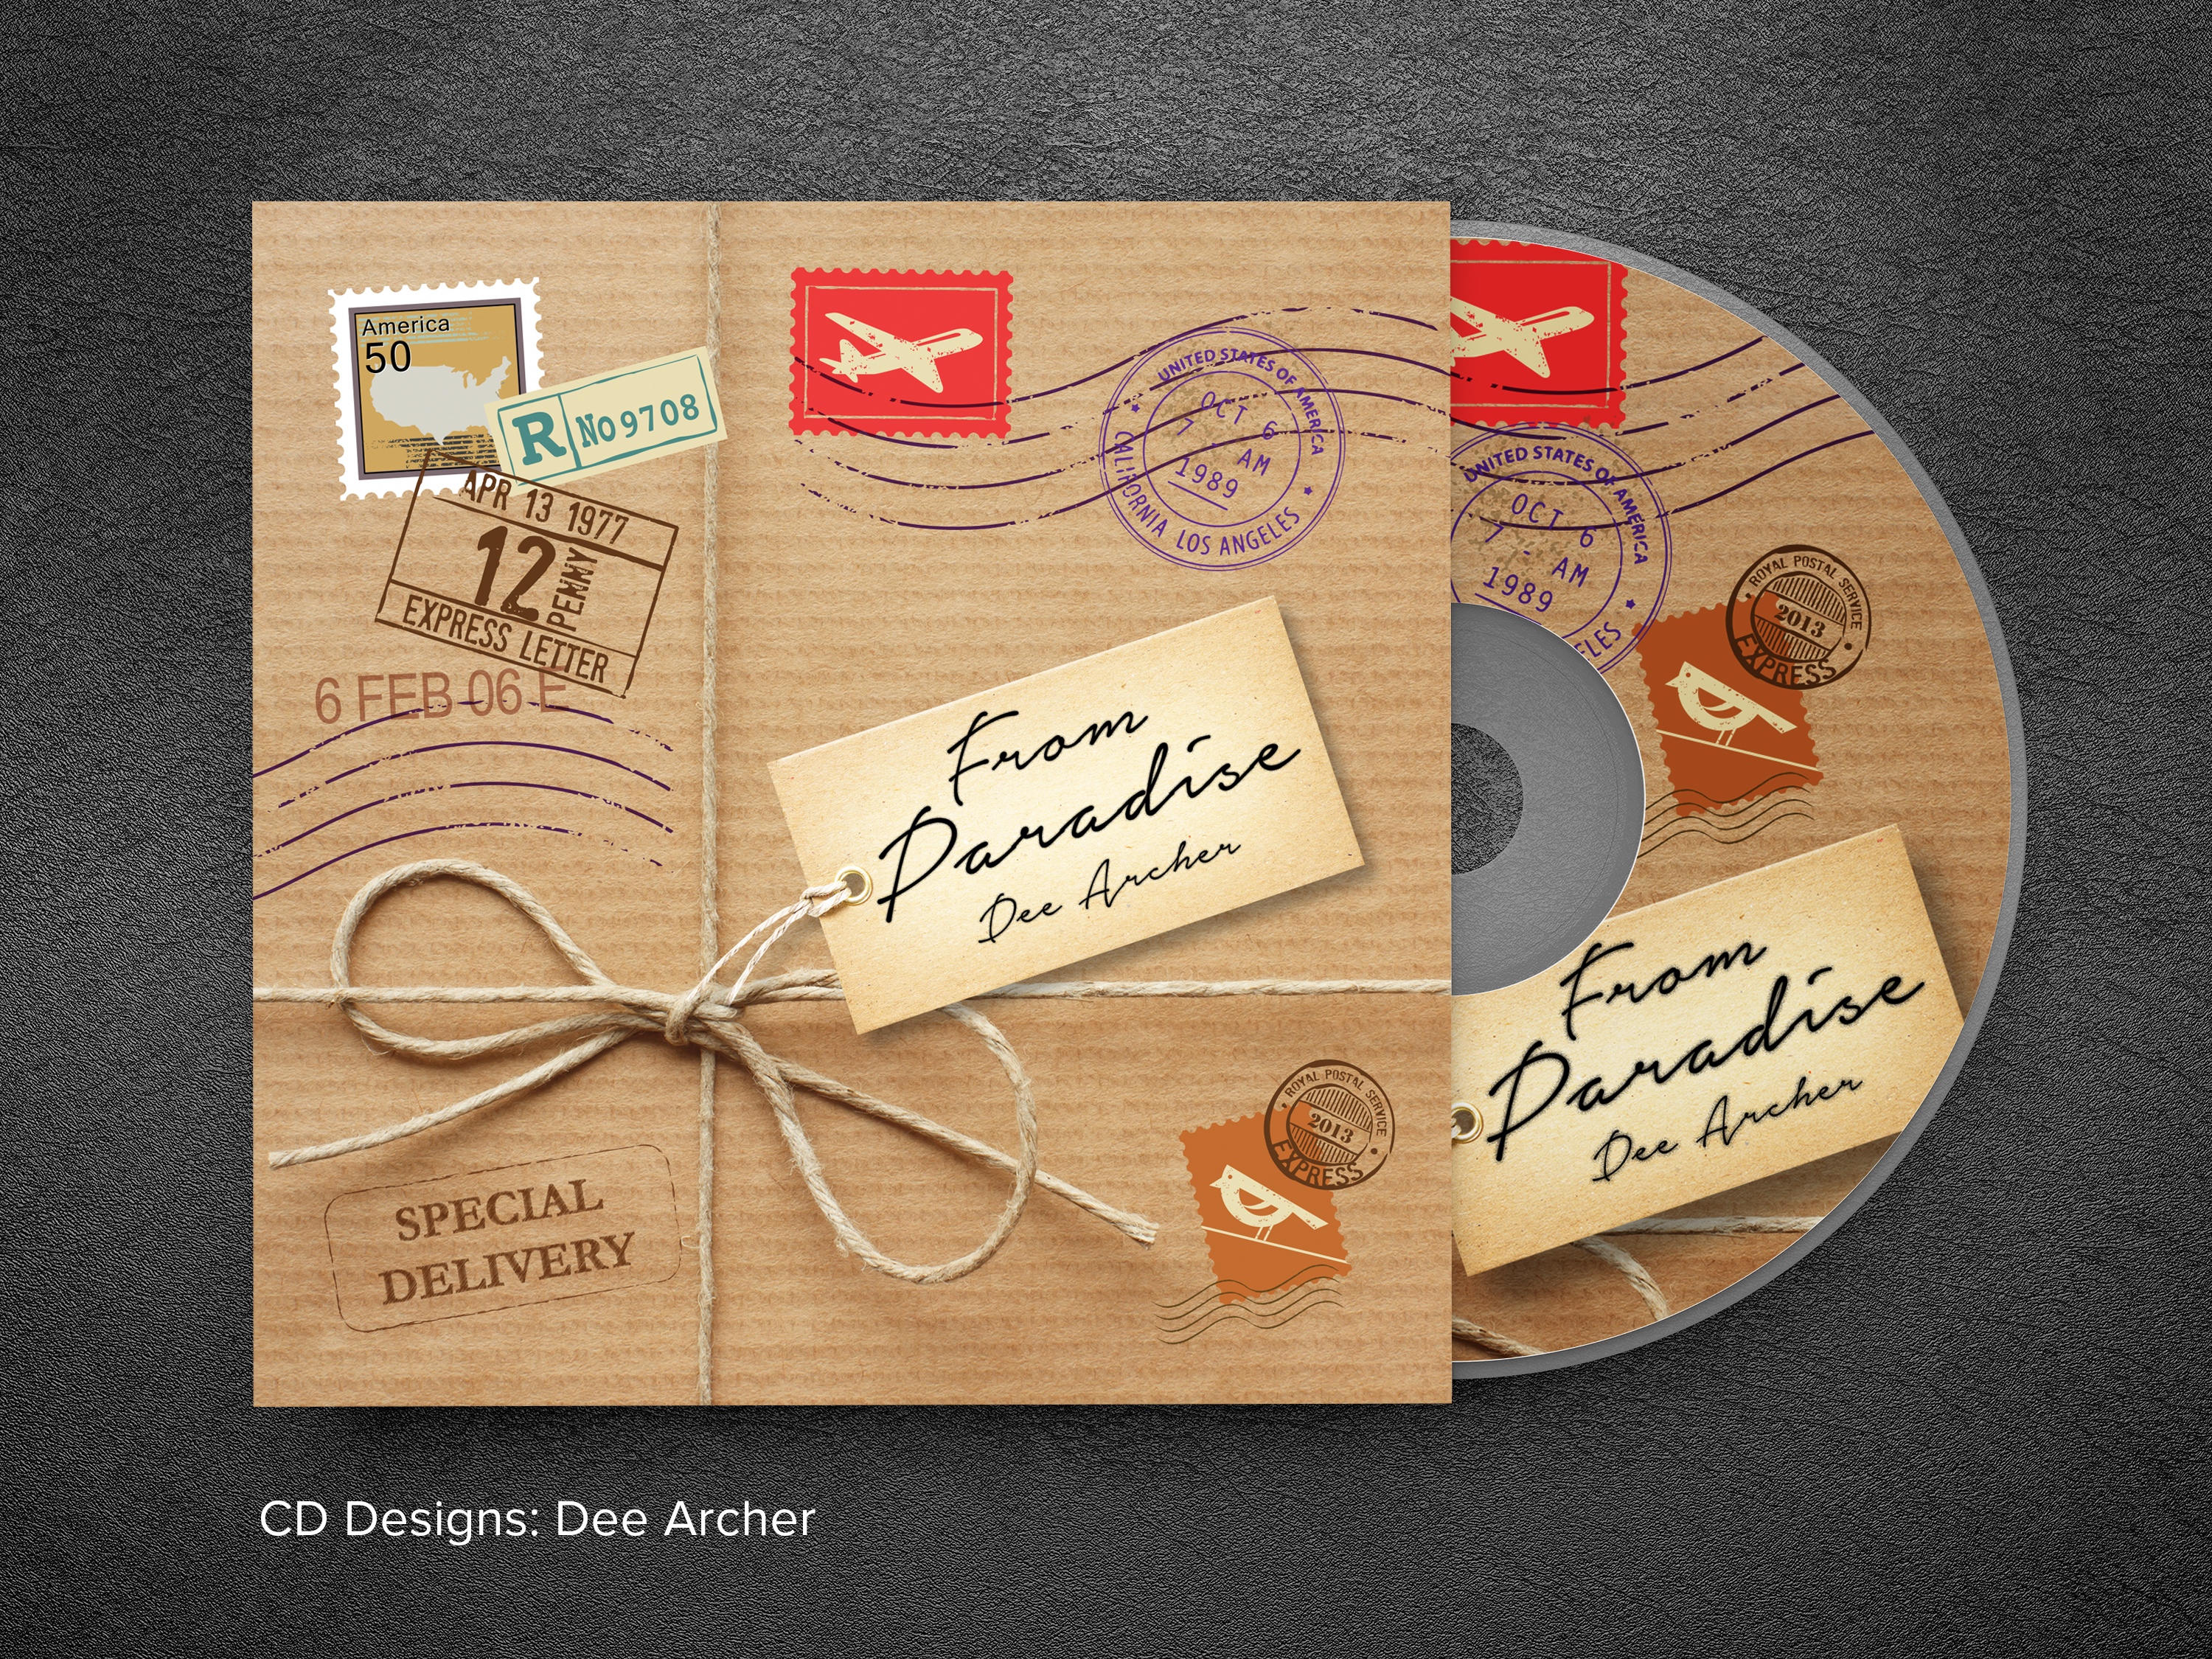 Dee Archer CD jacket